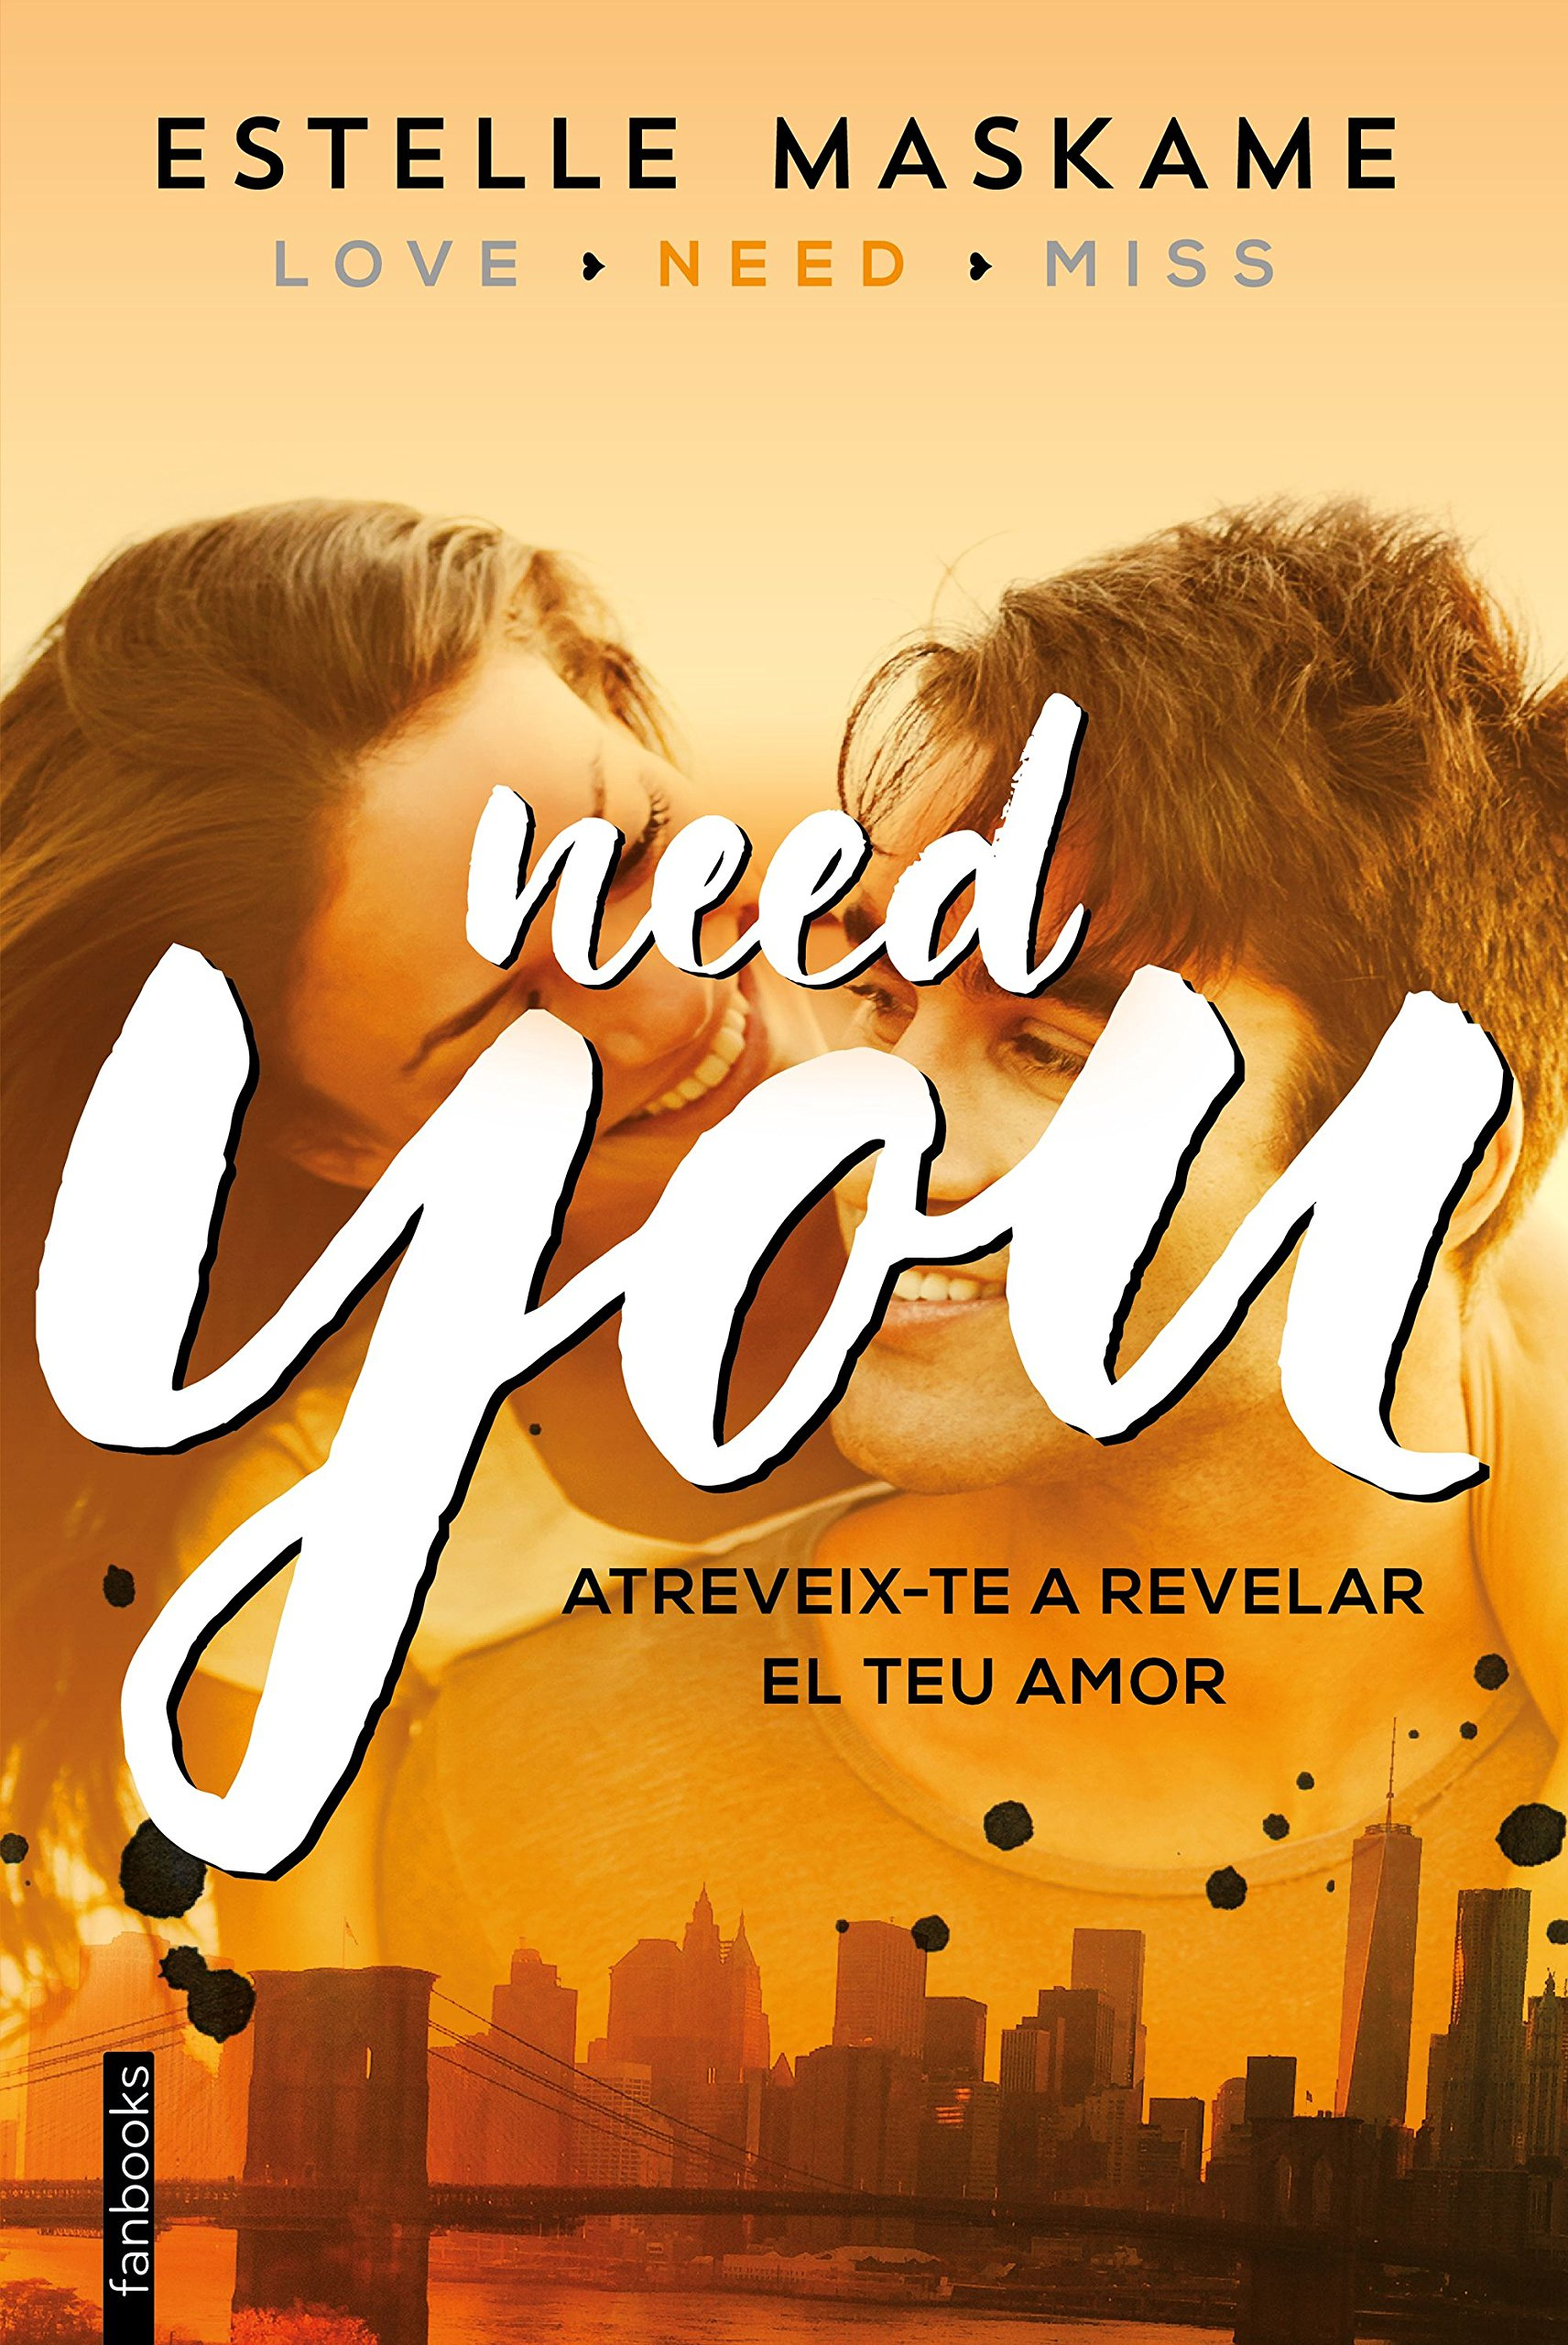 You 2. Need you (FICCIÓ): Amazon.es: Estelle Maskame, Esther Roig Giménez: Libros